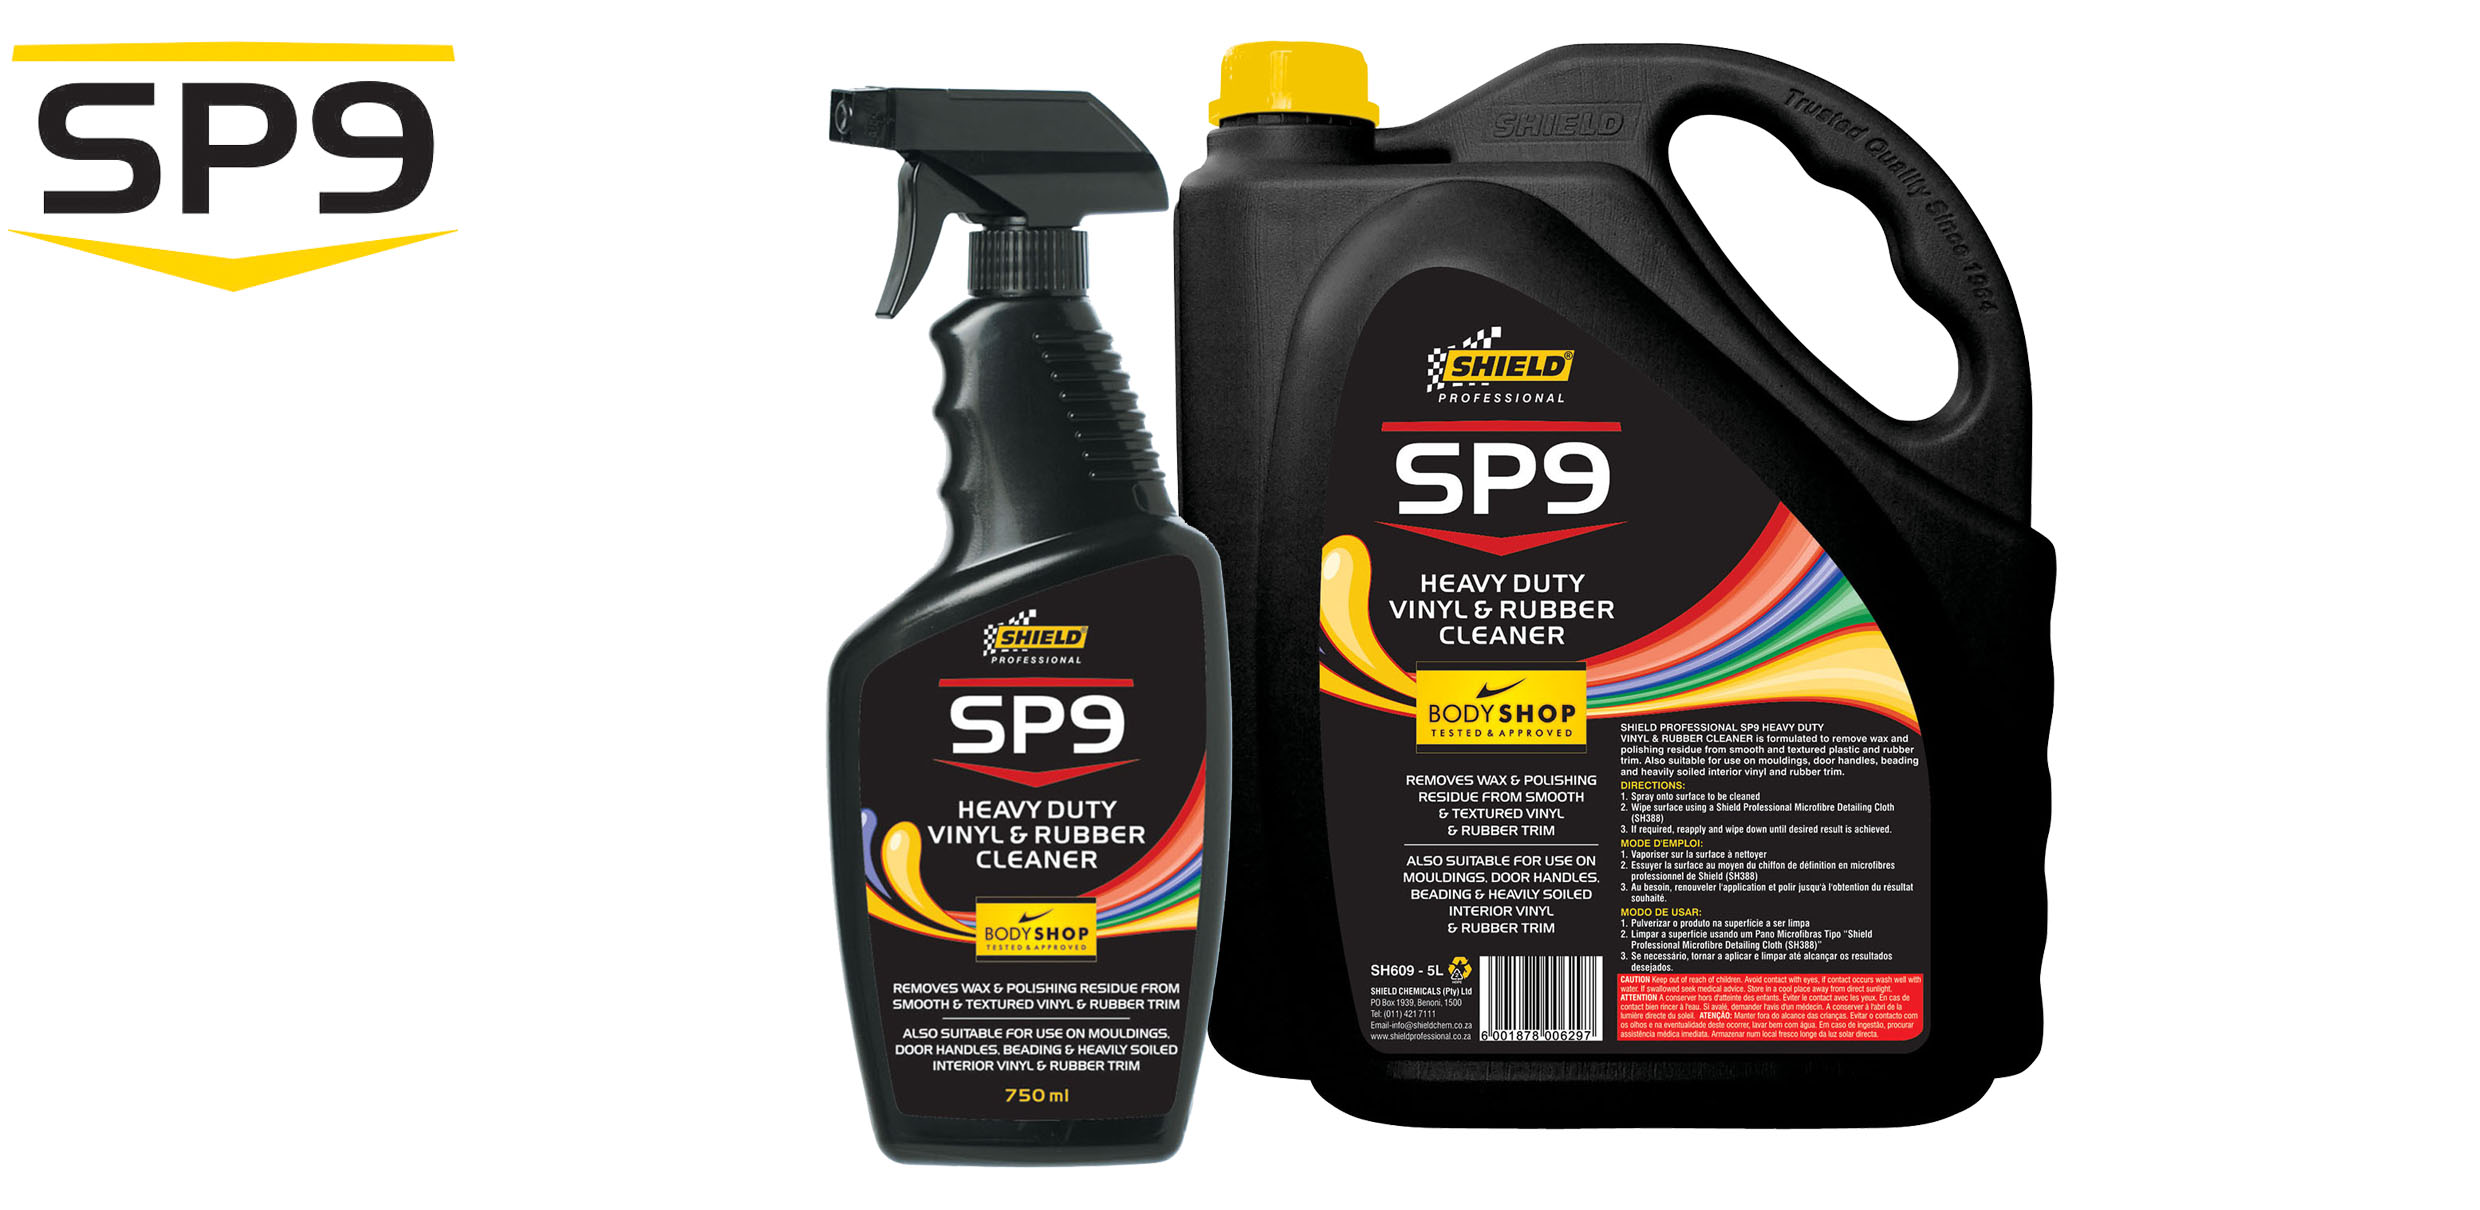 SP9 – HEAVY DUTY VINYL & RUBBER CLEANER